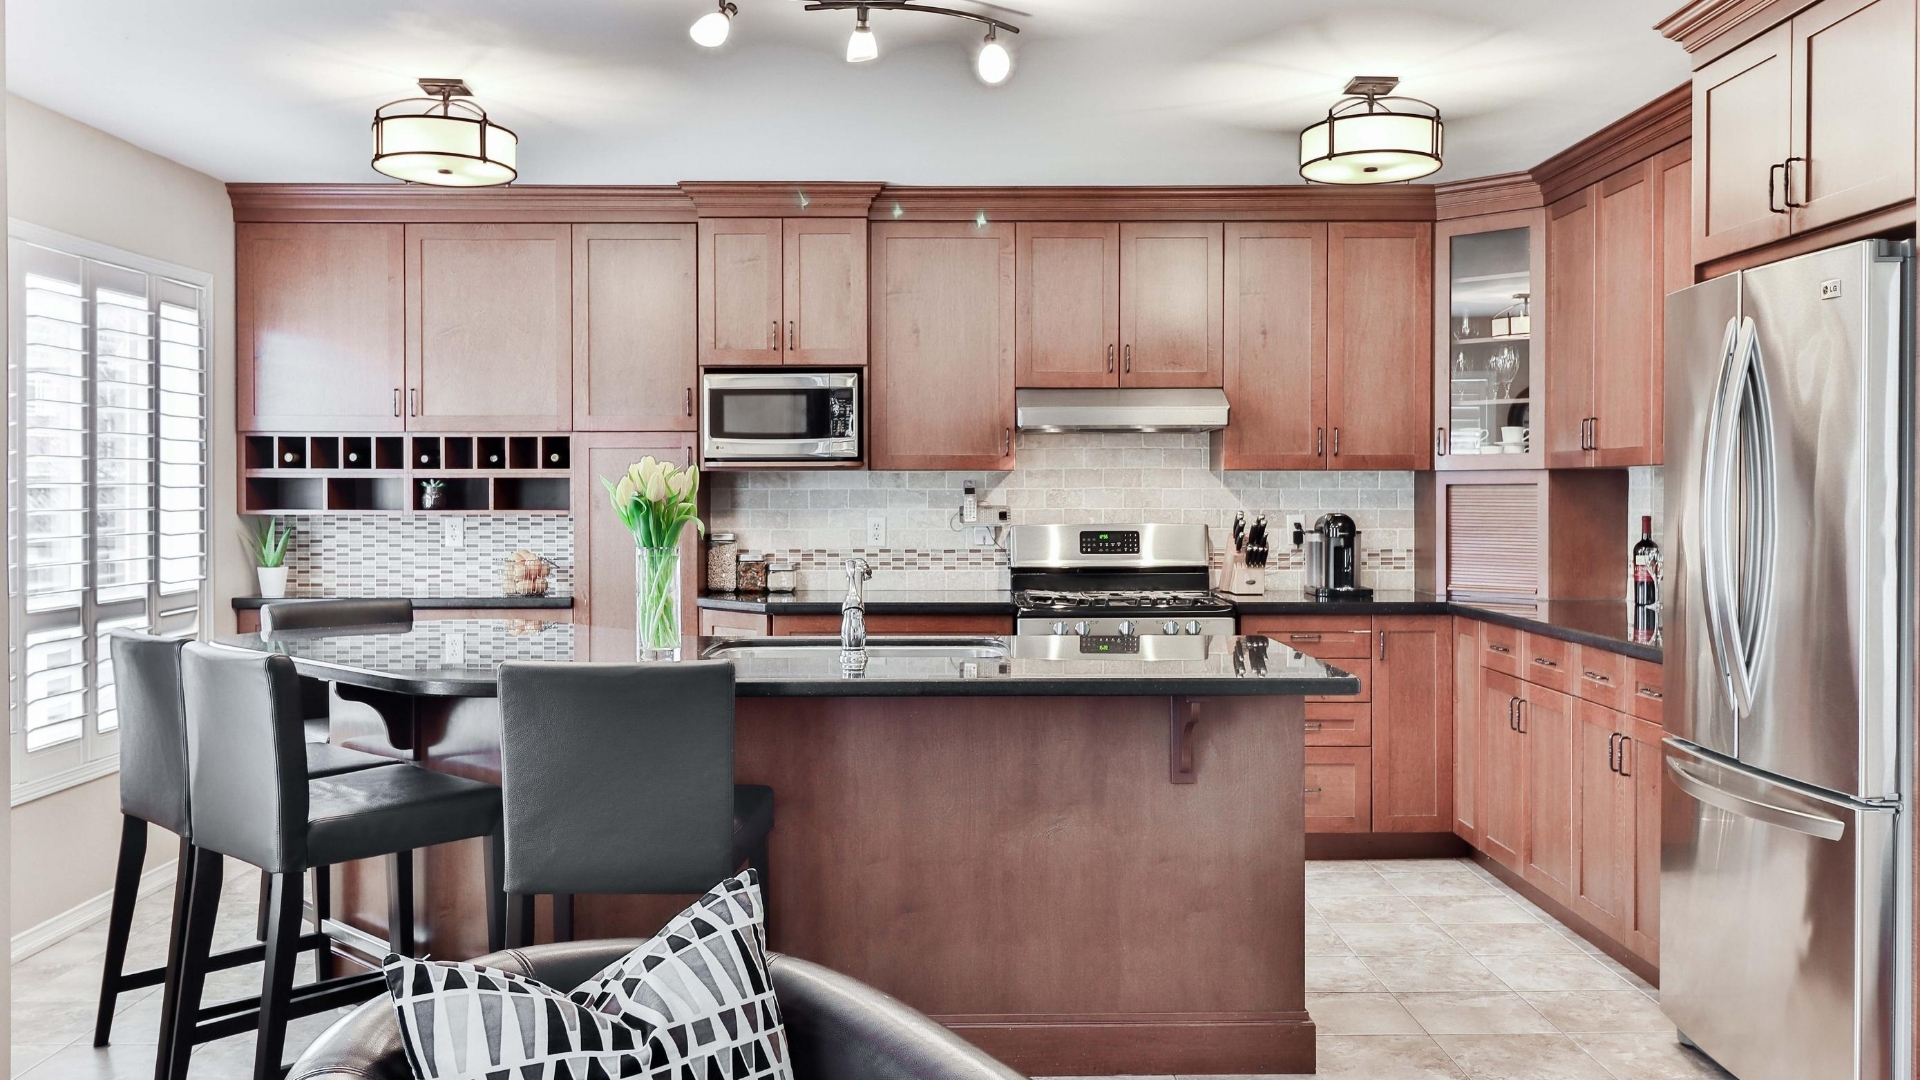 Kitchen Update Ideas For Your Maryland Or Washington Dc Home